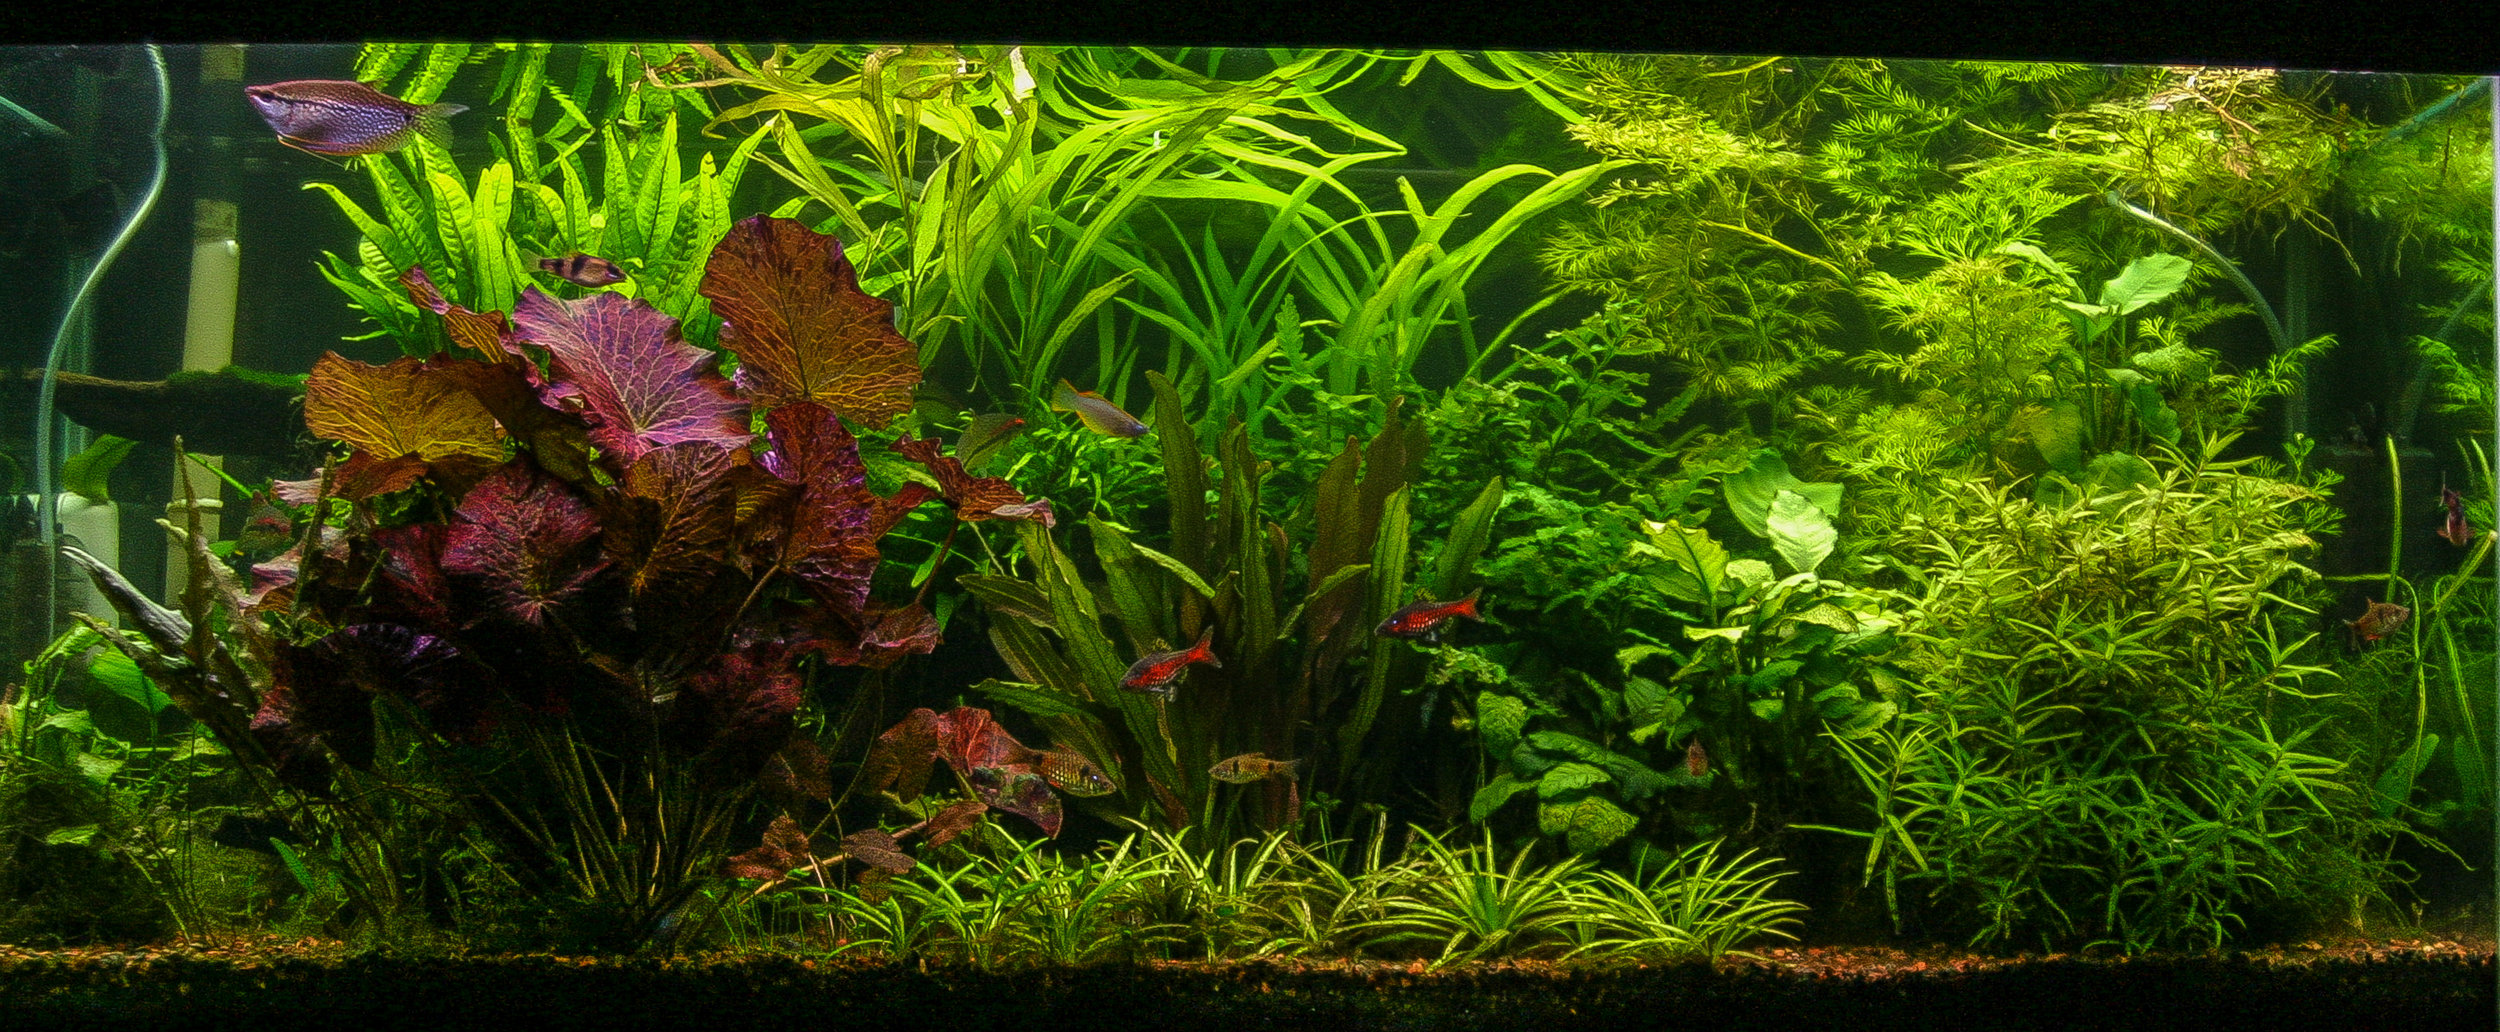 Tank after a few weeks of very moderate levels of CO2